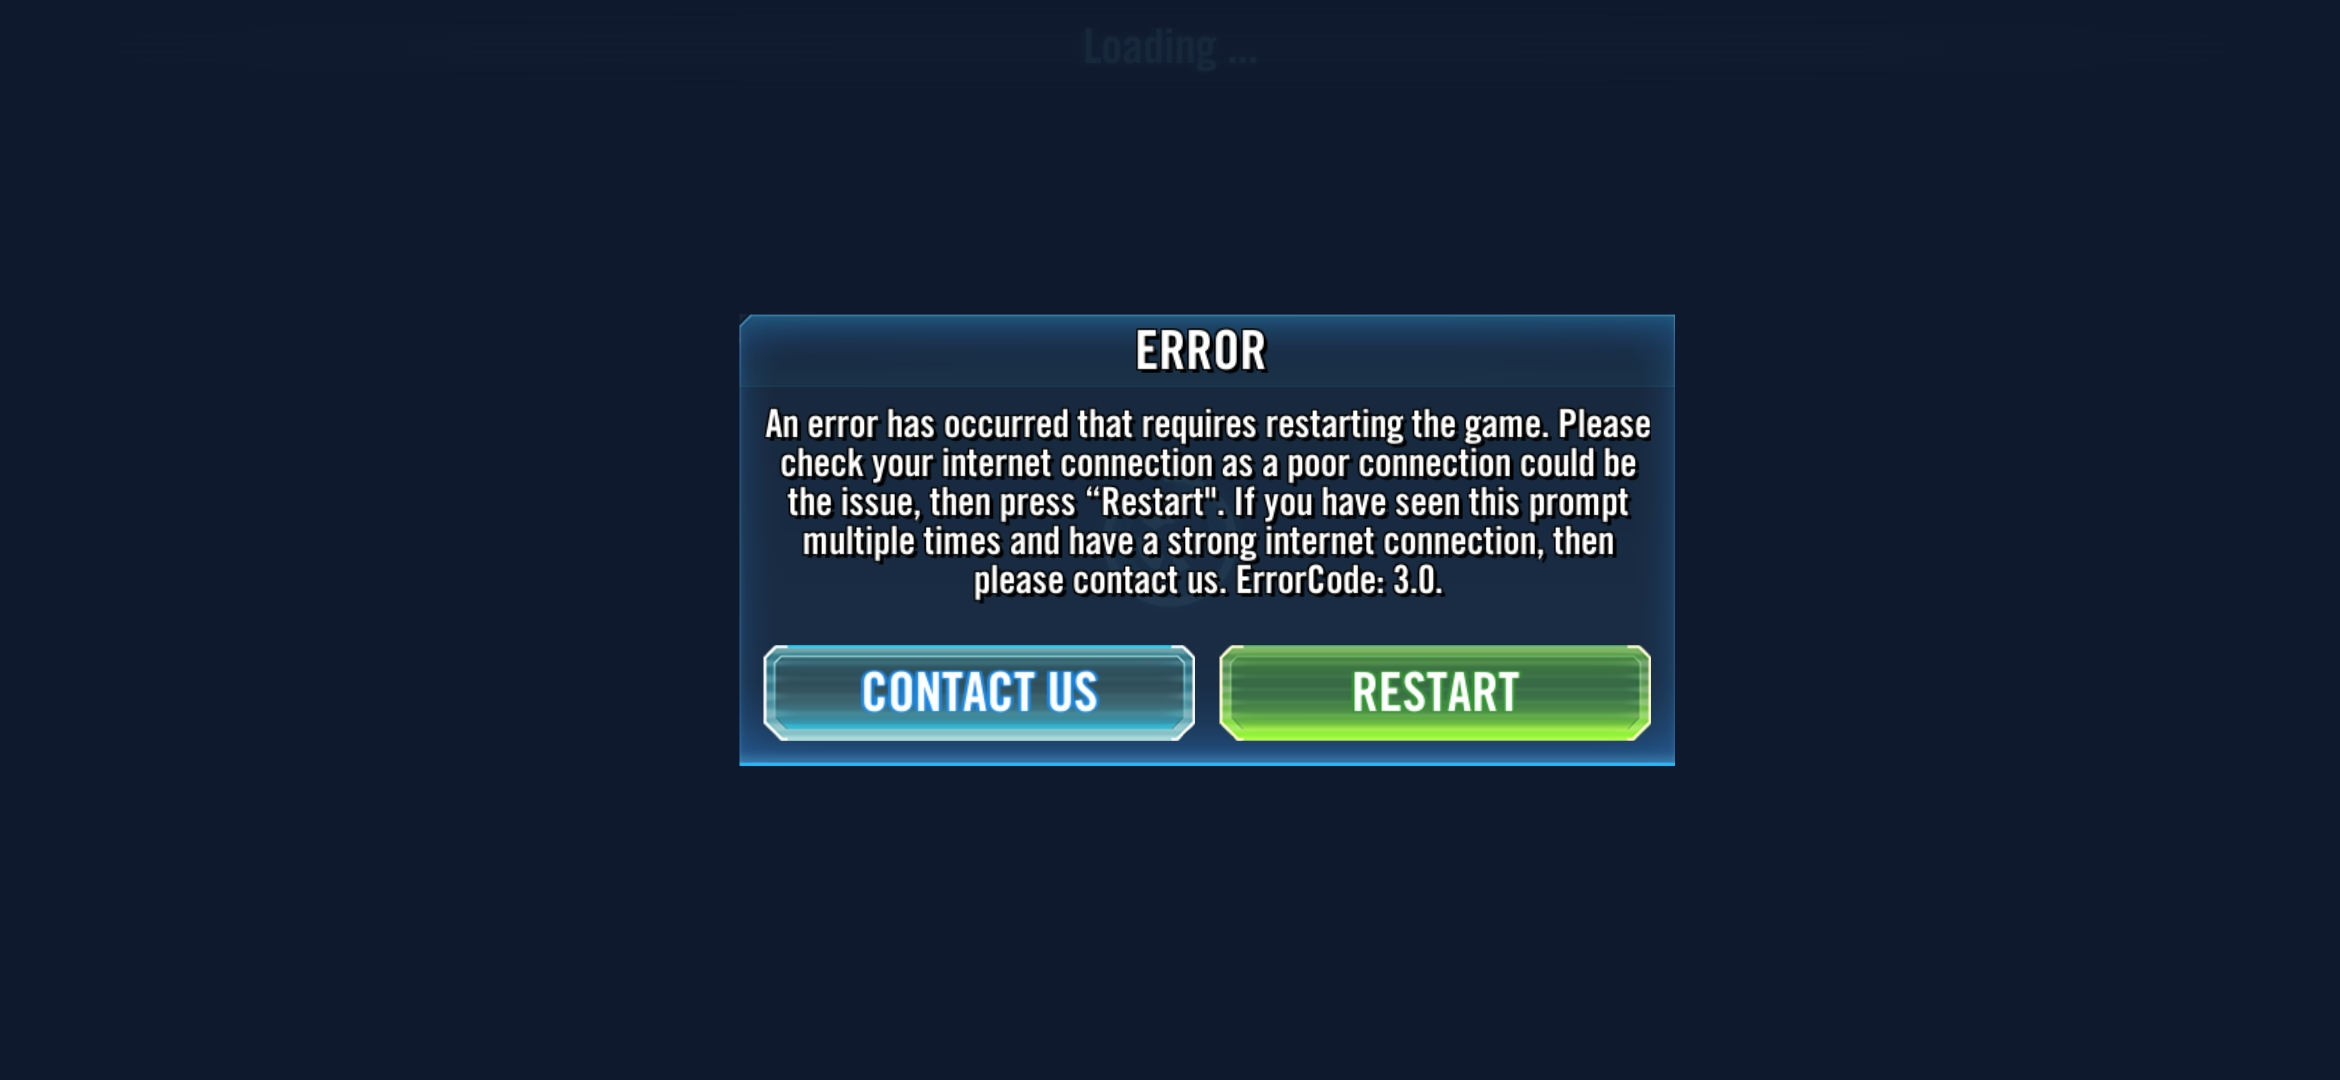 Screenshot_20190323_182409_com.ea.game.starwarscapital_row.jpg